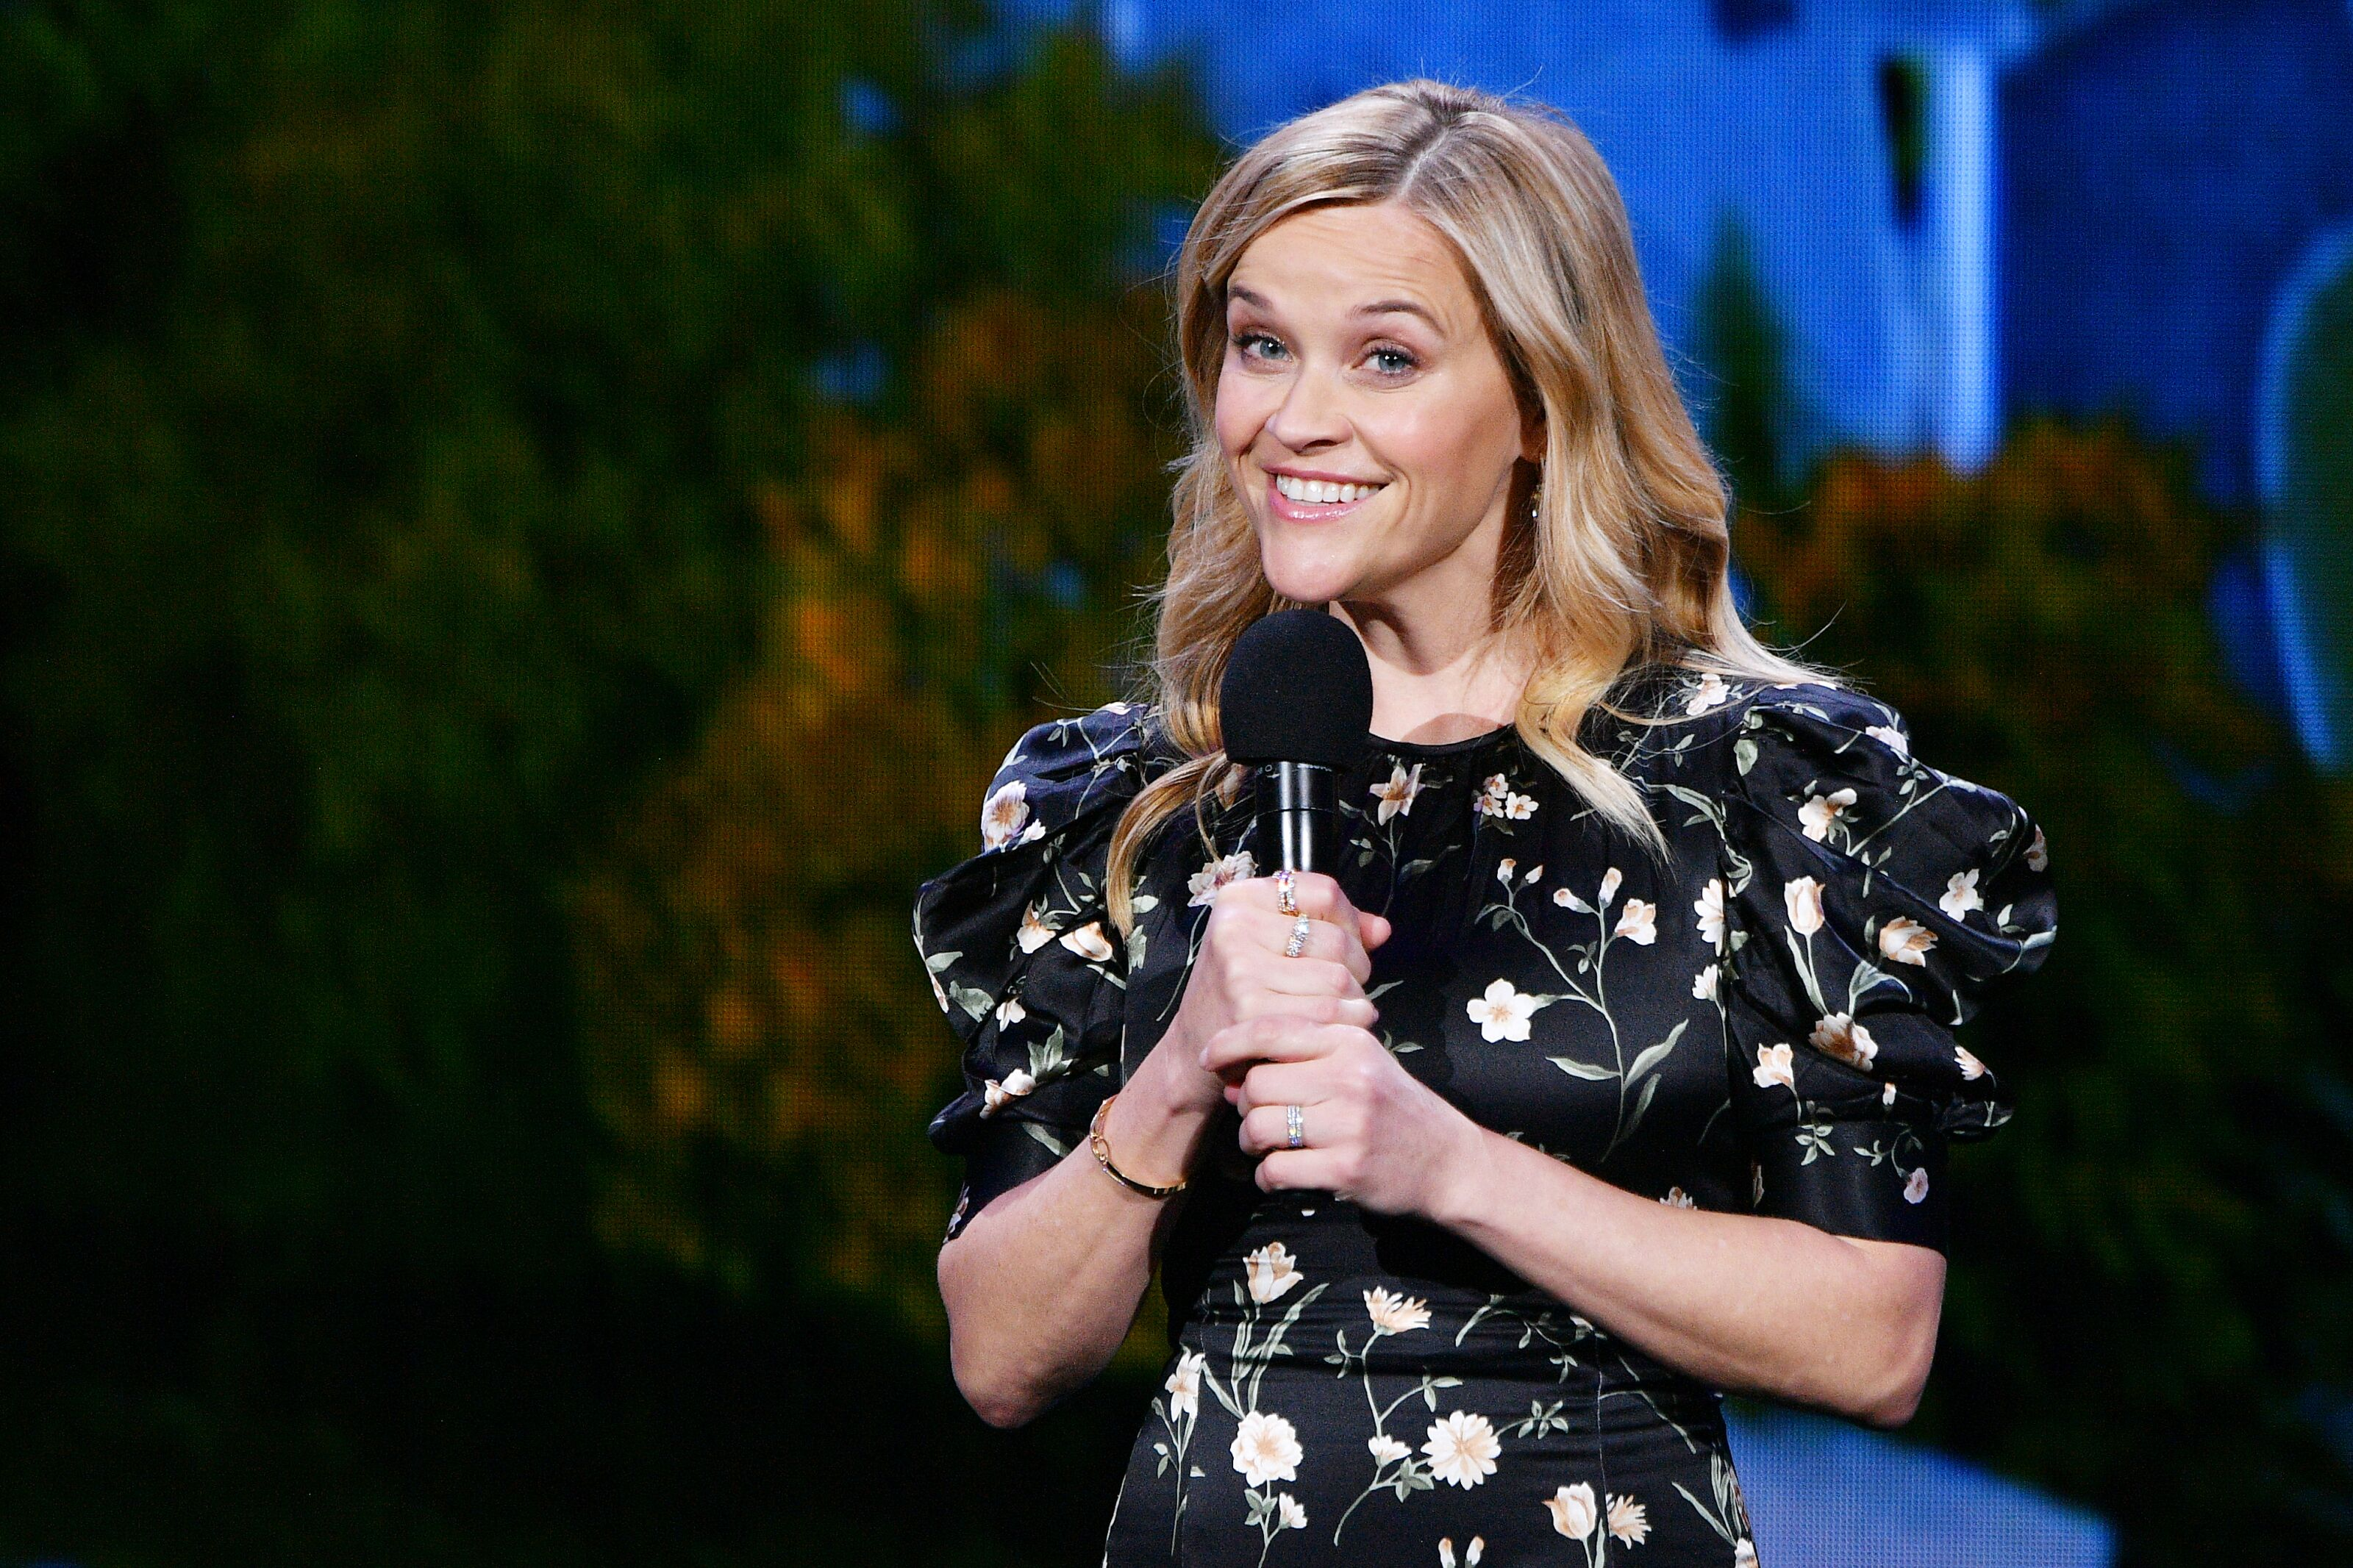 Style Diaries: How to dress like Reese Witherspoon